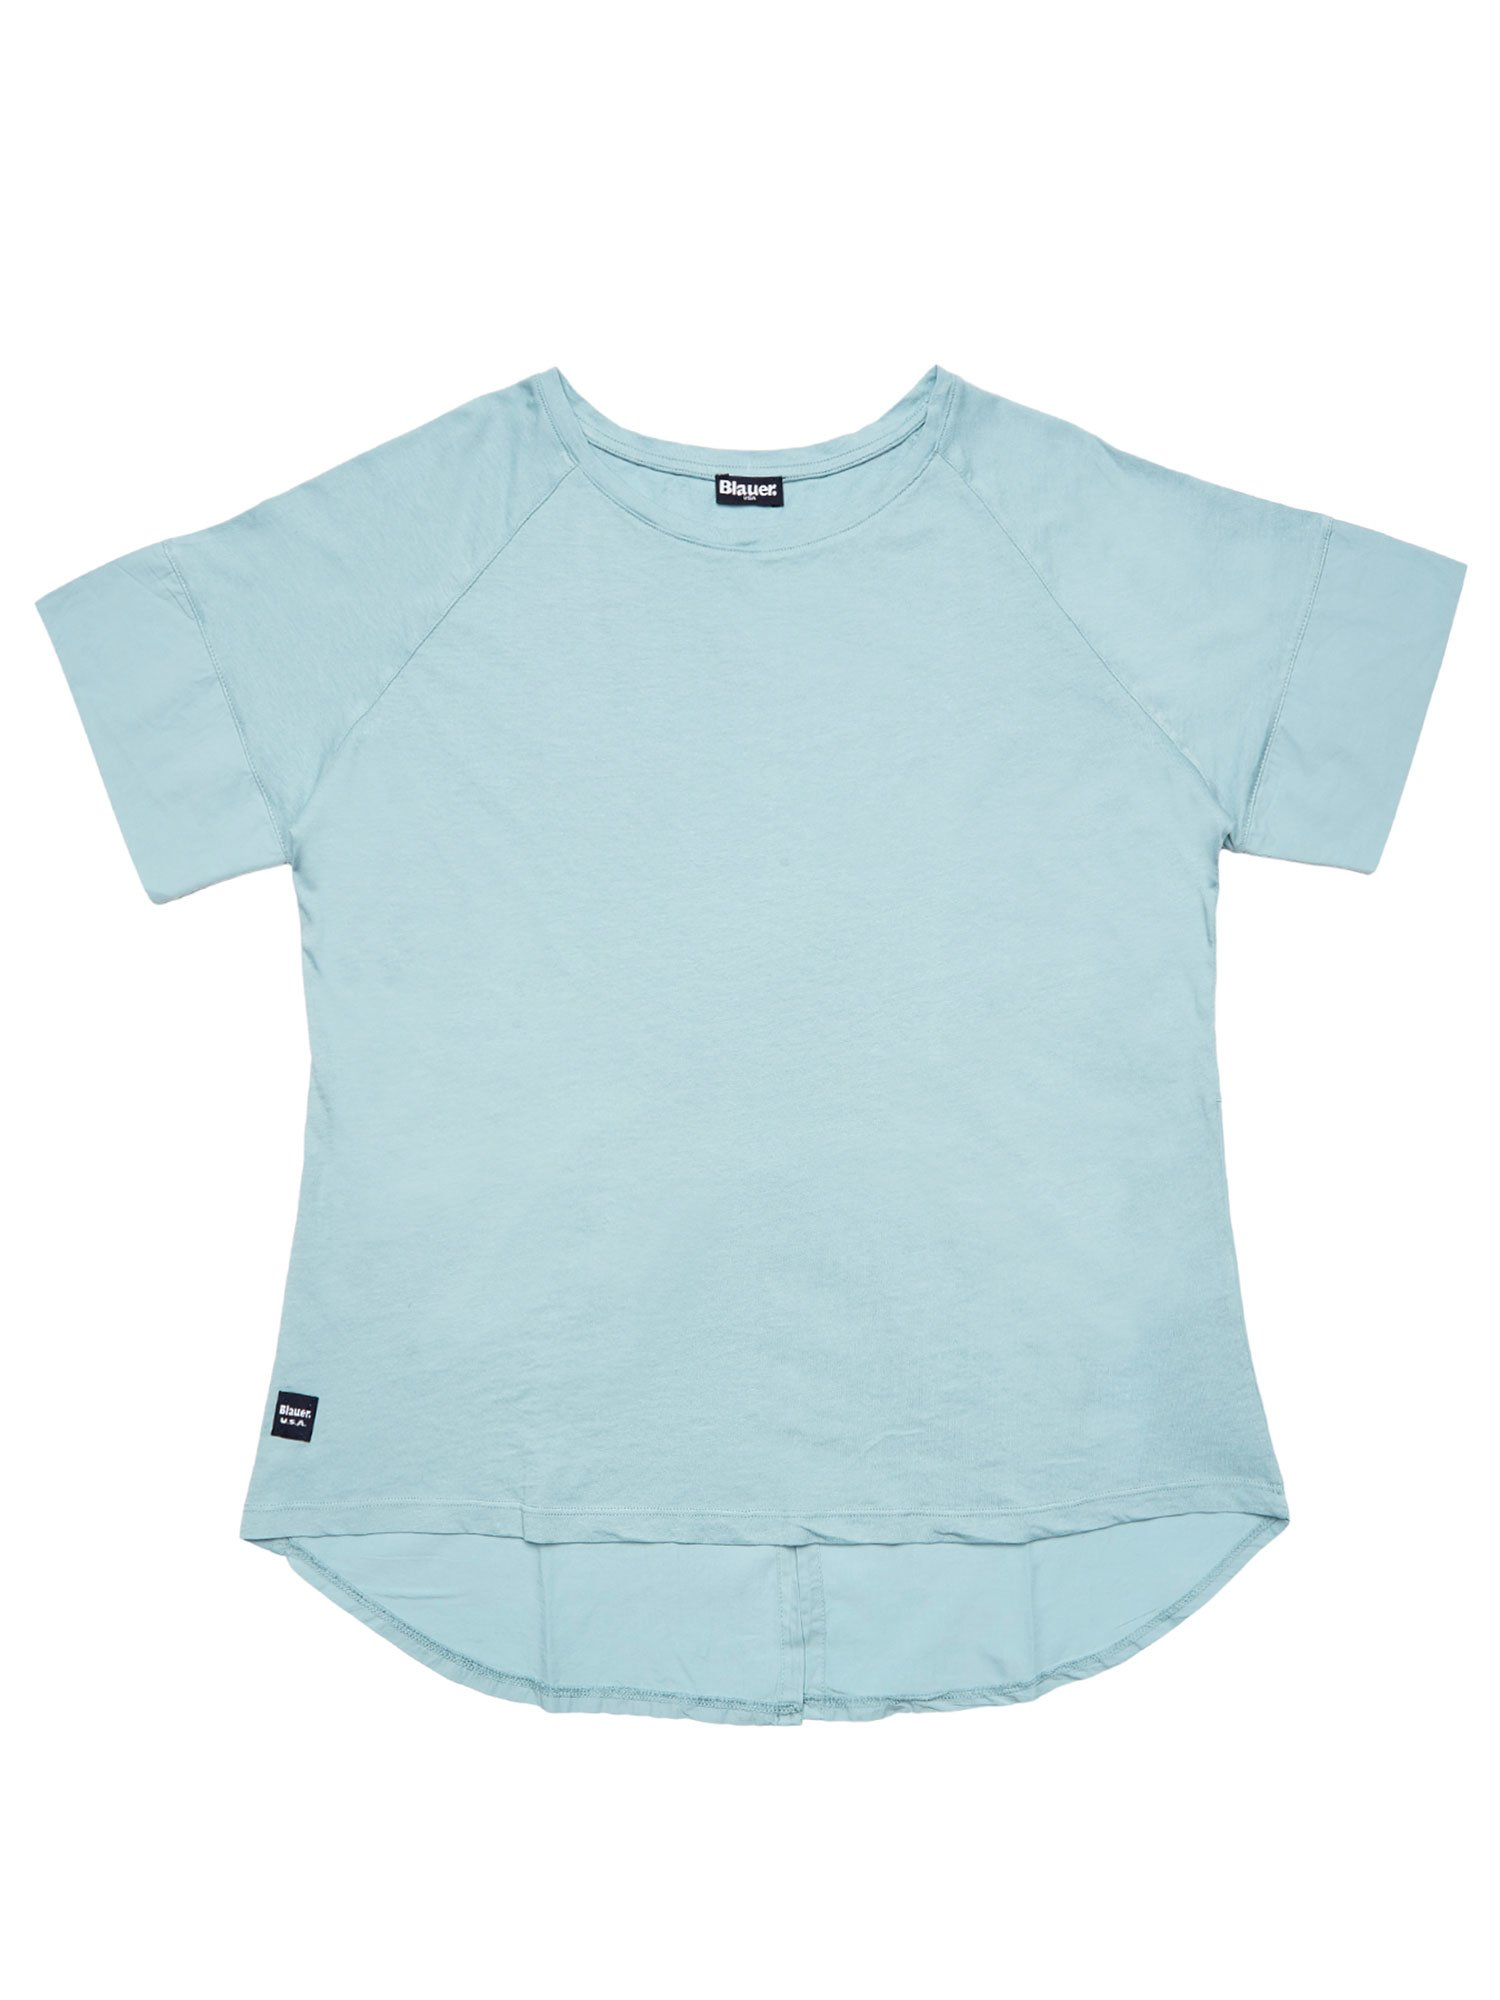 T-SHIRT WITH BACK SLIT - Blauer